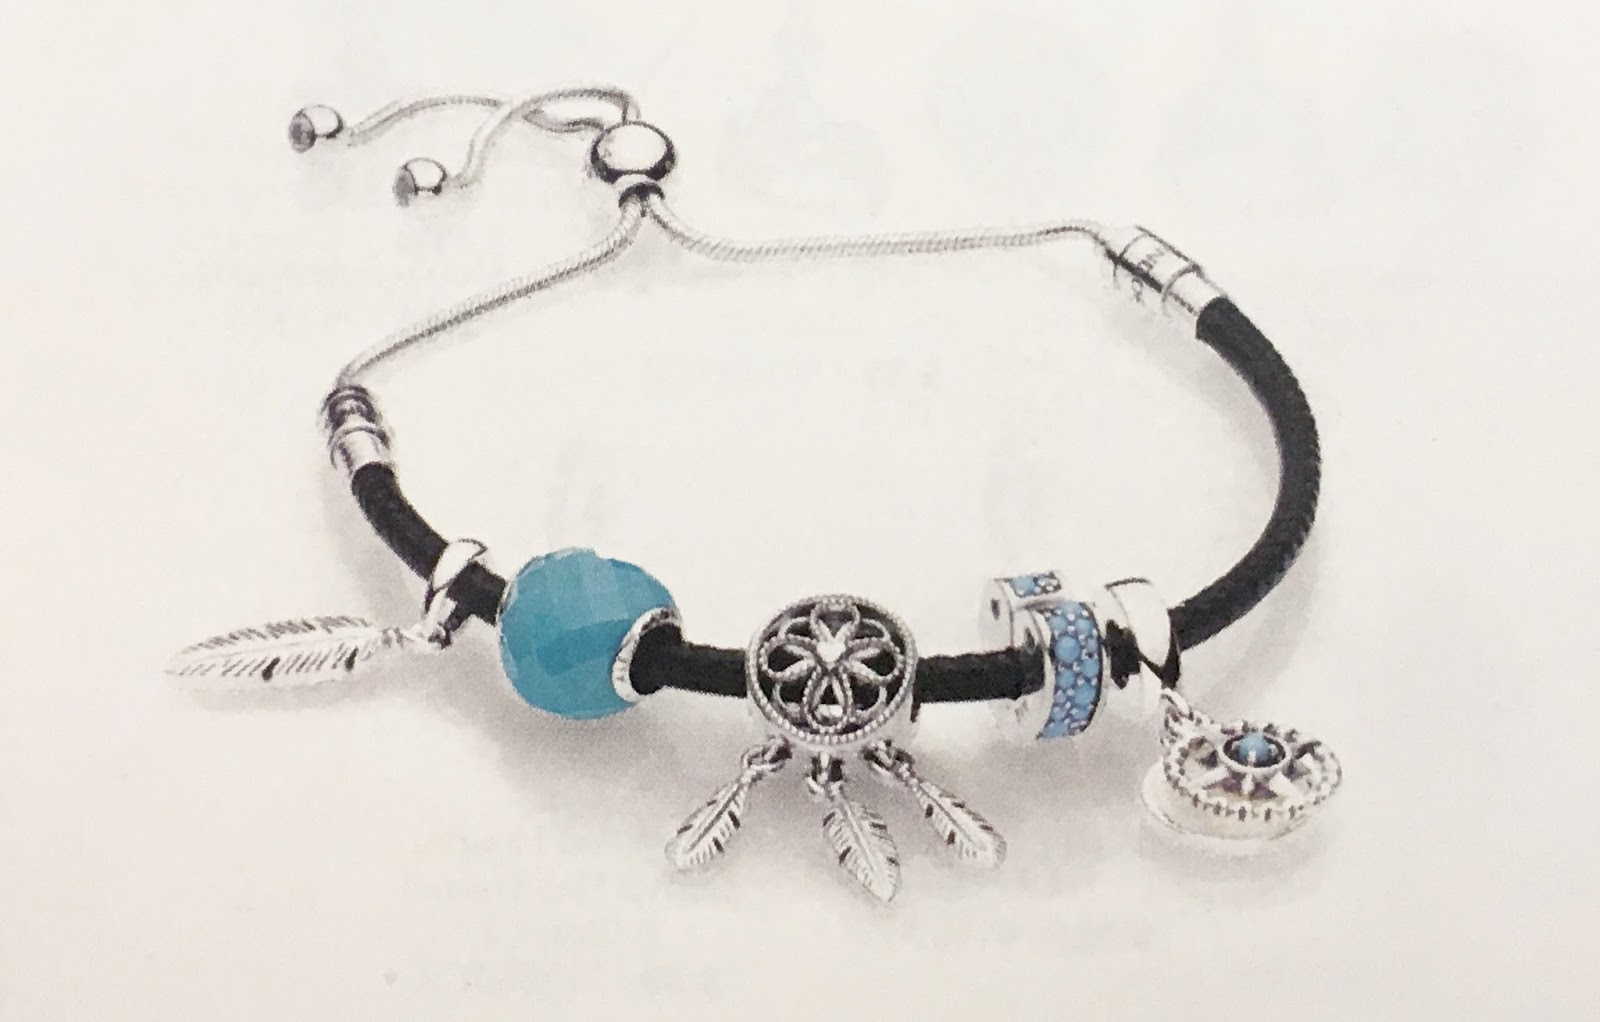 4bc0da27b Pandora has come out with some great new designs for the summer, a  departure from the usual nautical and beach themes. It's been a while since  I've been ...